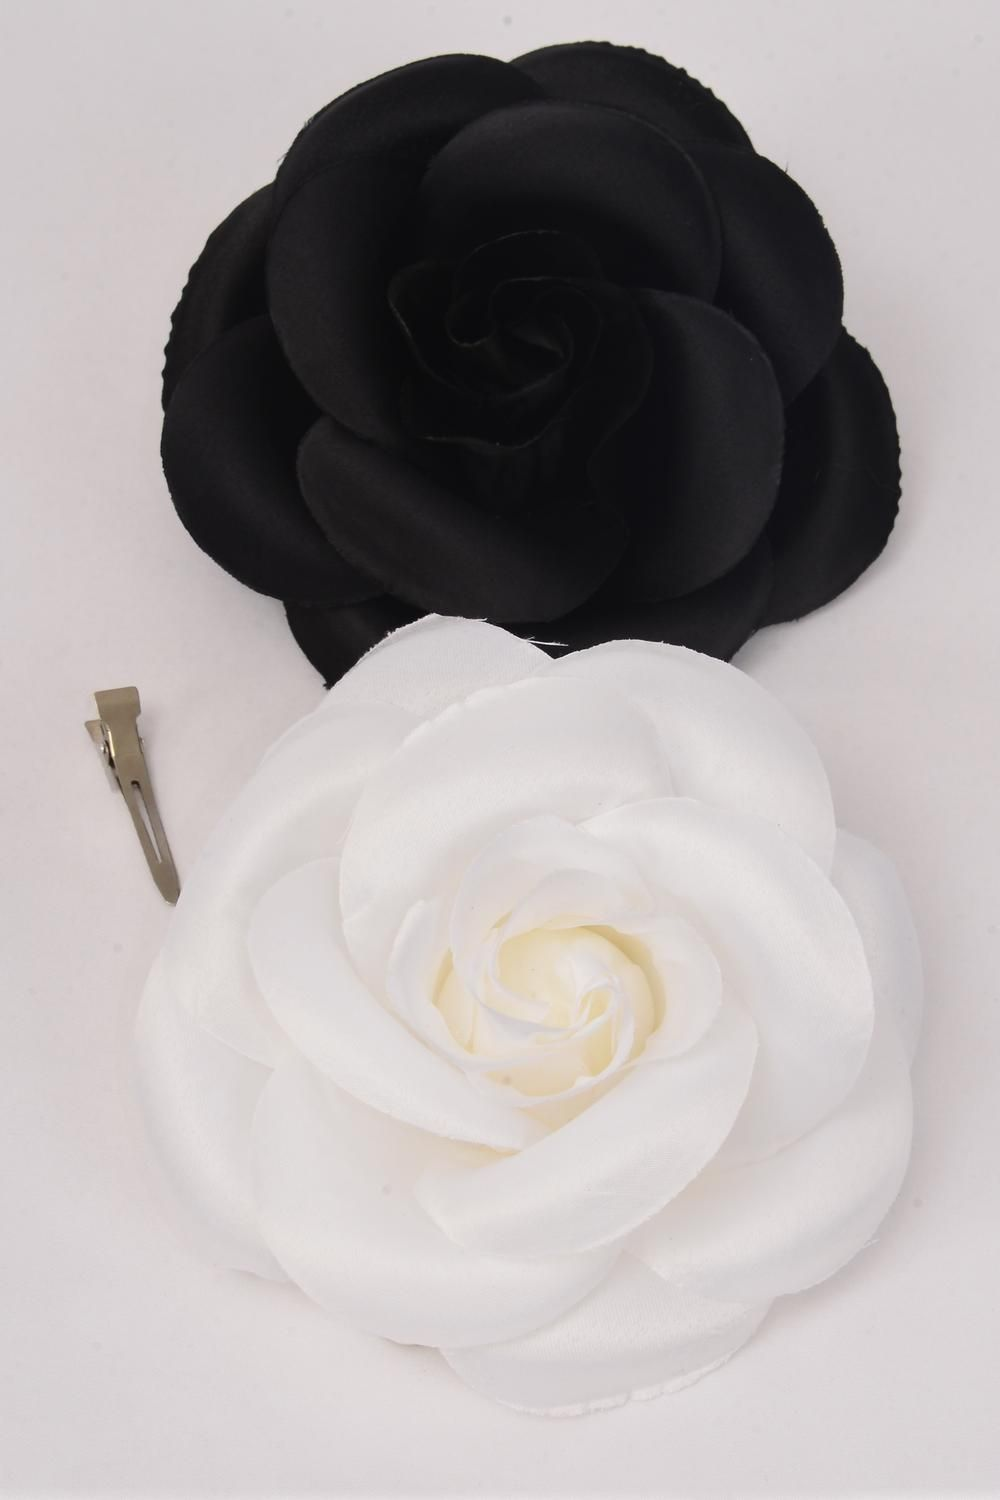 "Flower Silk Tea-Rose Jumbo Black & White Mix/DZ Size-6"" Wide,Alligator Clip & Brooch & Elastic,6 Black,6 White Asst,Hang Tag & UPC Code,W Clear Box"